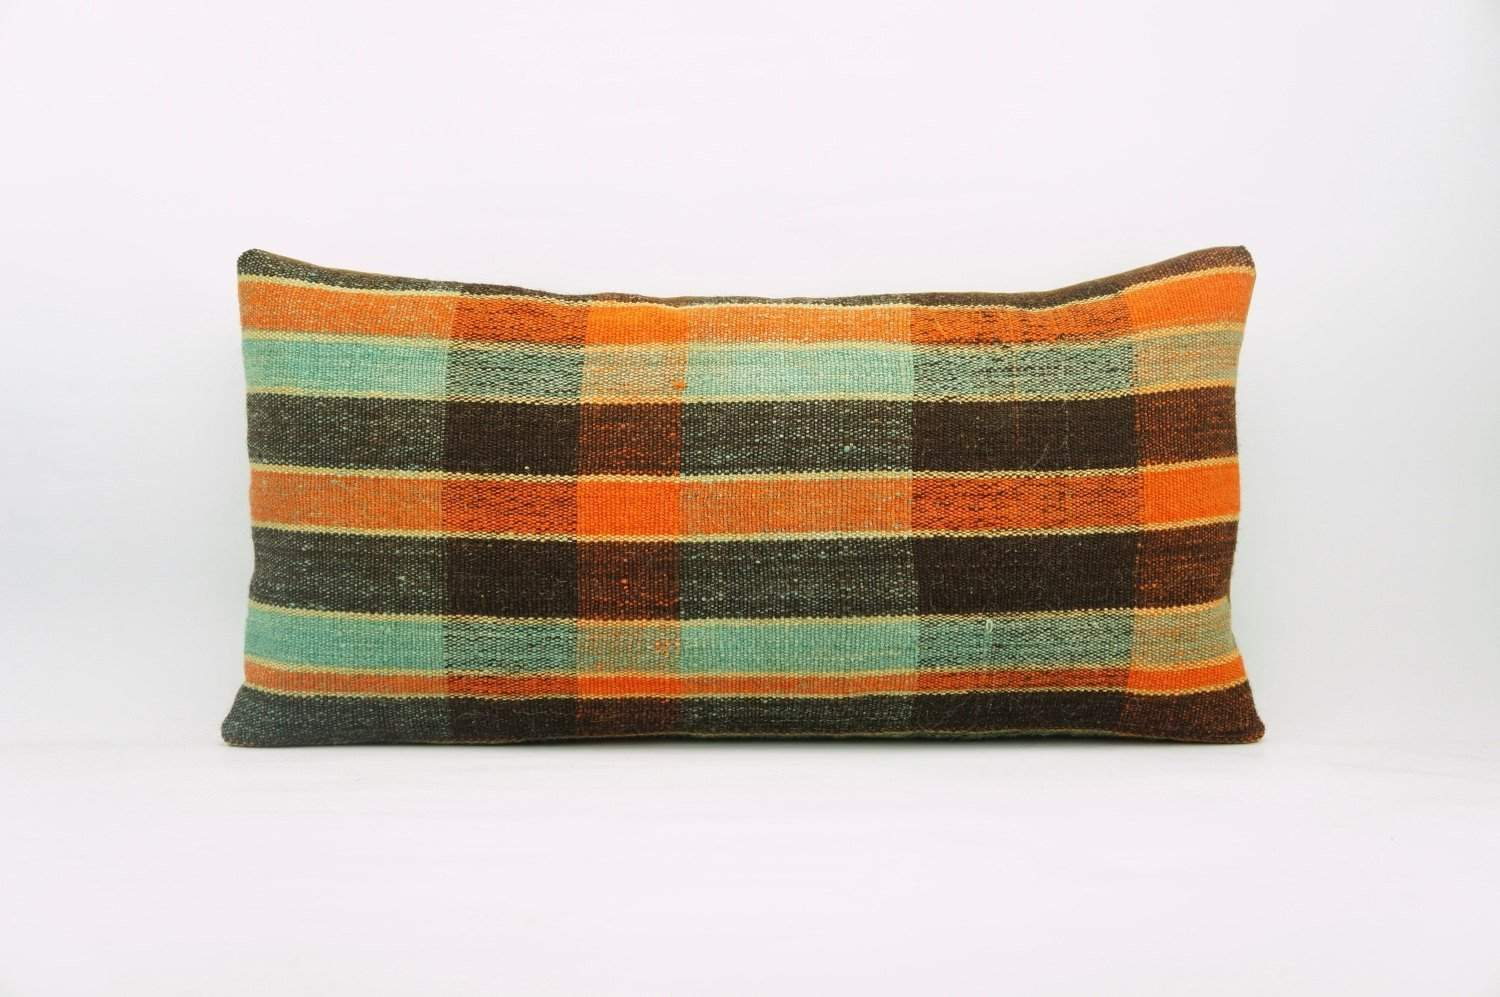 12x24 Vintage Hand Woven Kilim Pillow Lumbar Bohemian pillow case, 968